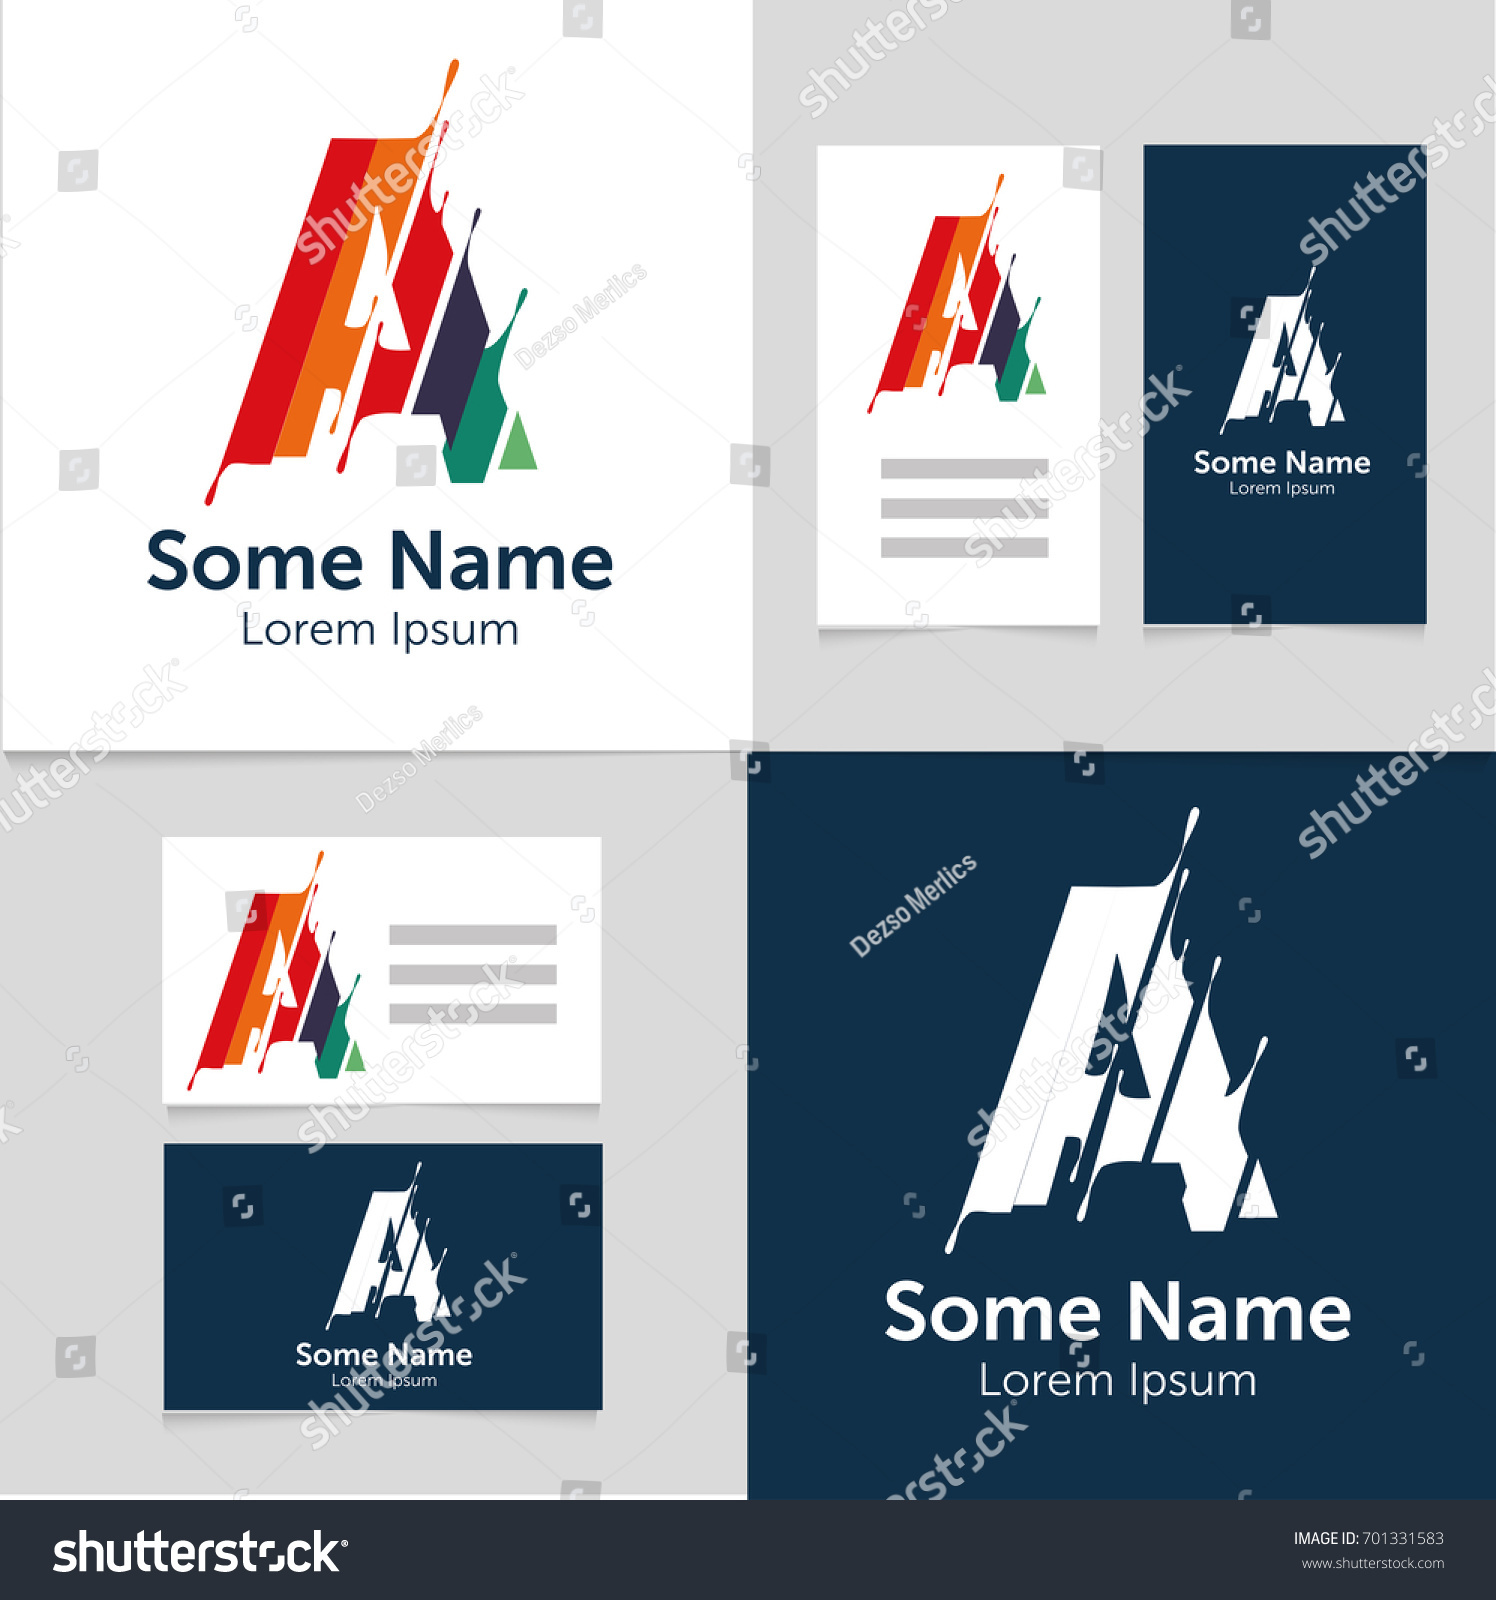 Editable Business Card Template Letter Logovector Stock Vector ...